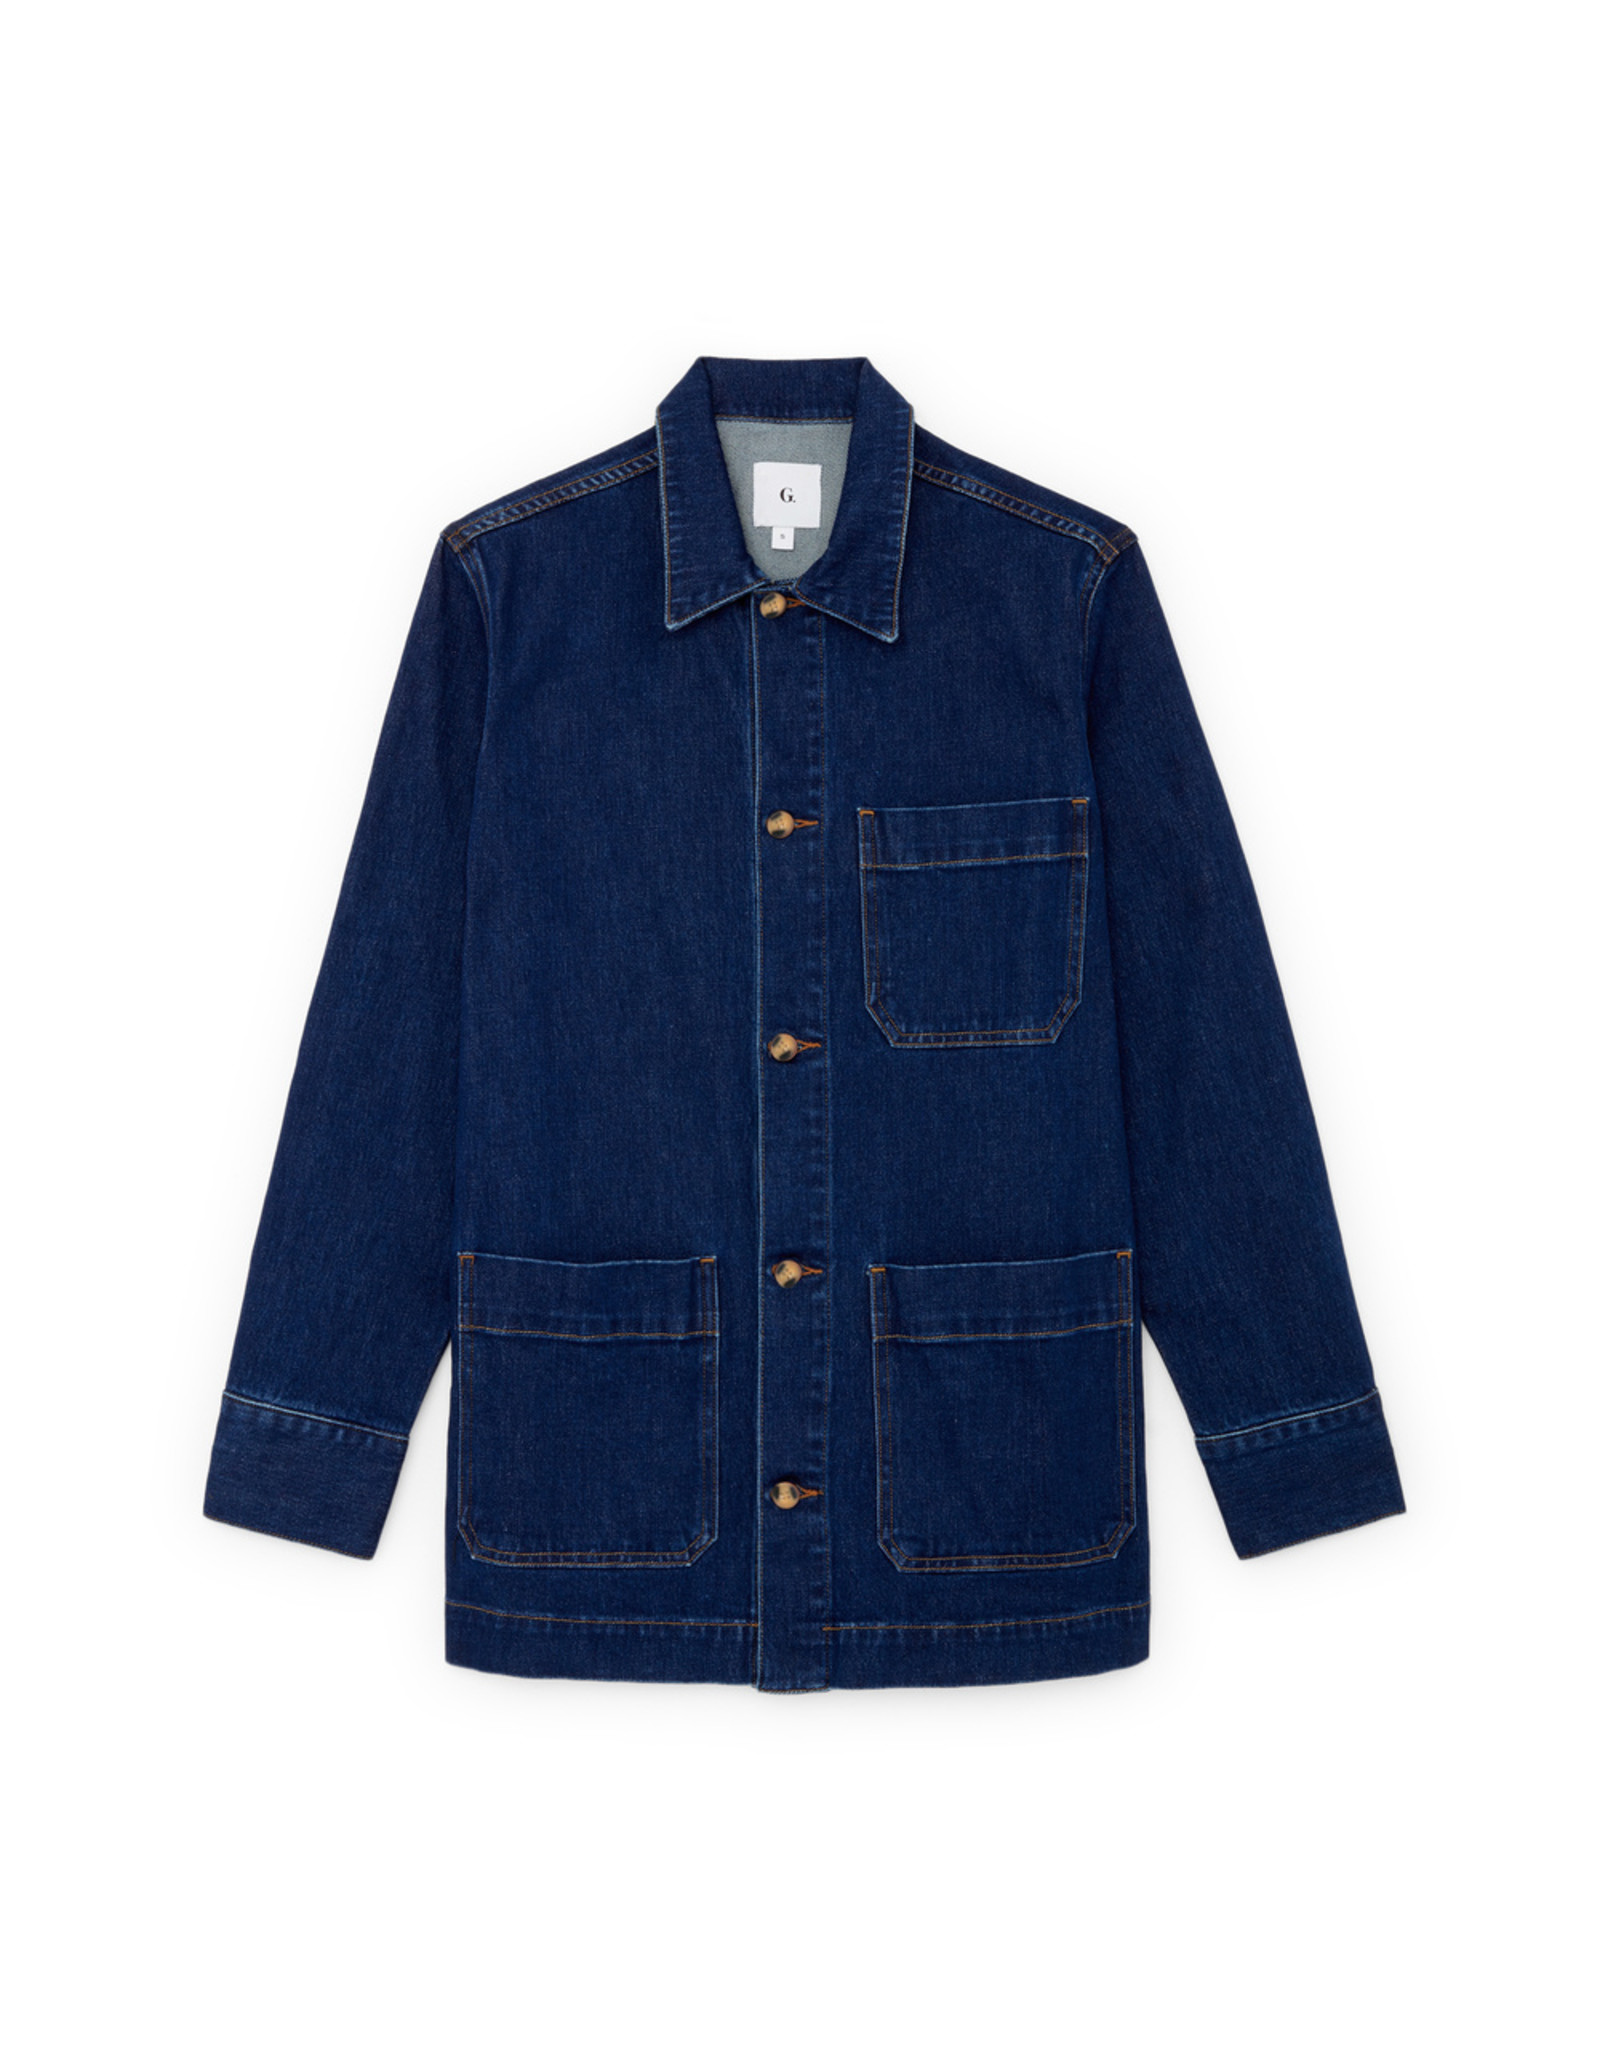 G. Label G. Label Sandra Utility Jacket (Color: Medium Blue Wash, Size: S)